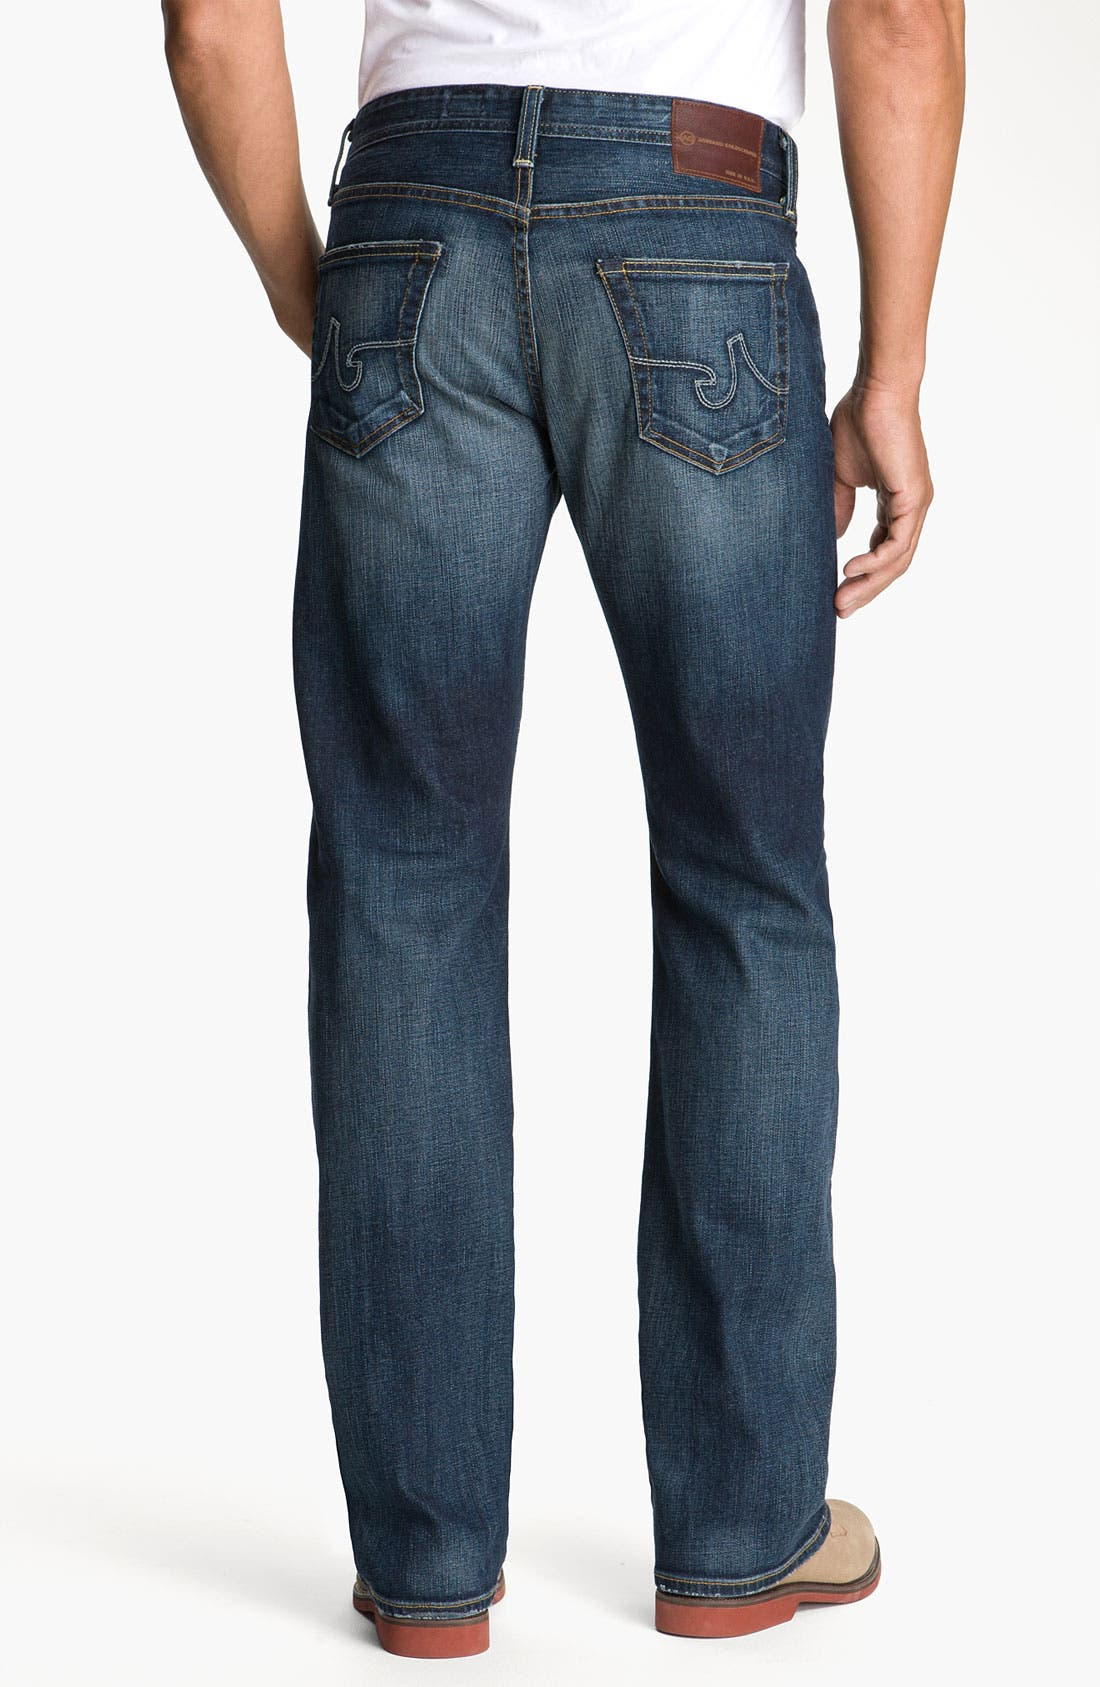 Alternate Image 1 Selected - AG Jeans 'Hero' Relaxed Fit Jeans (Noise Wash)